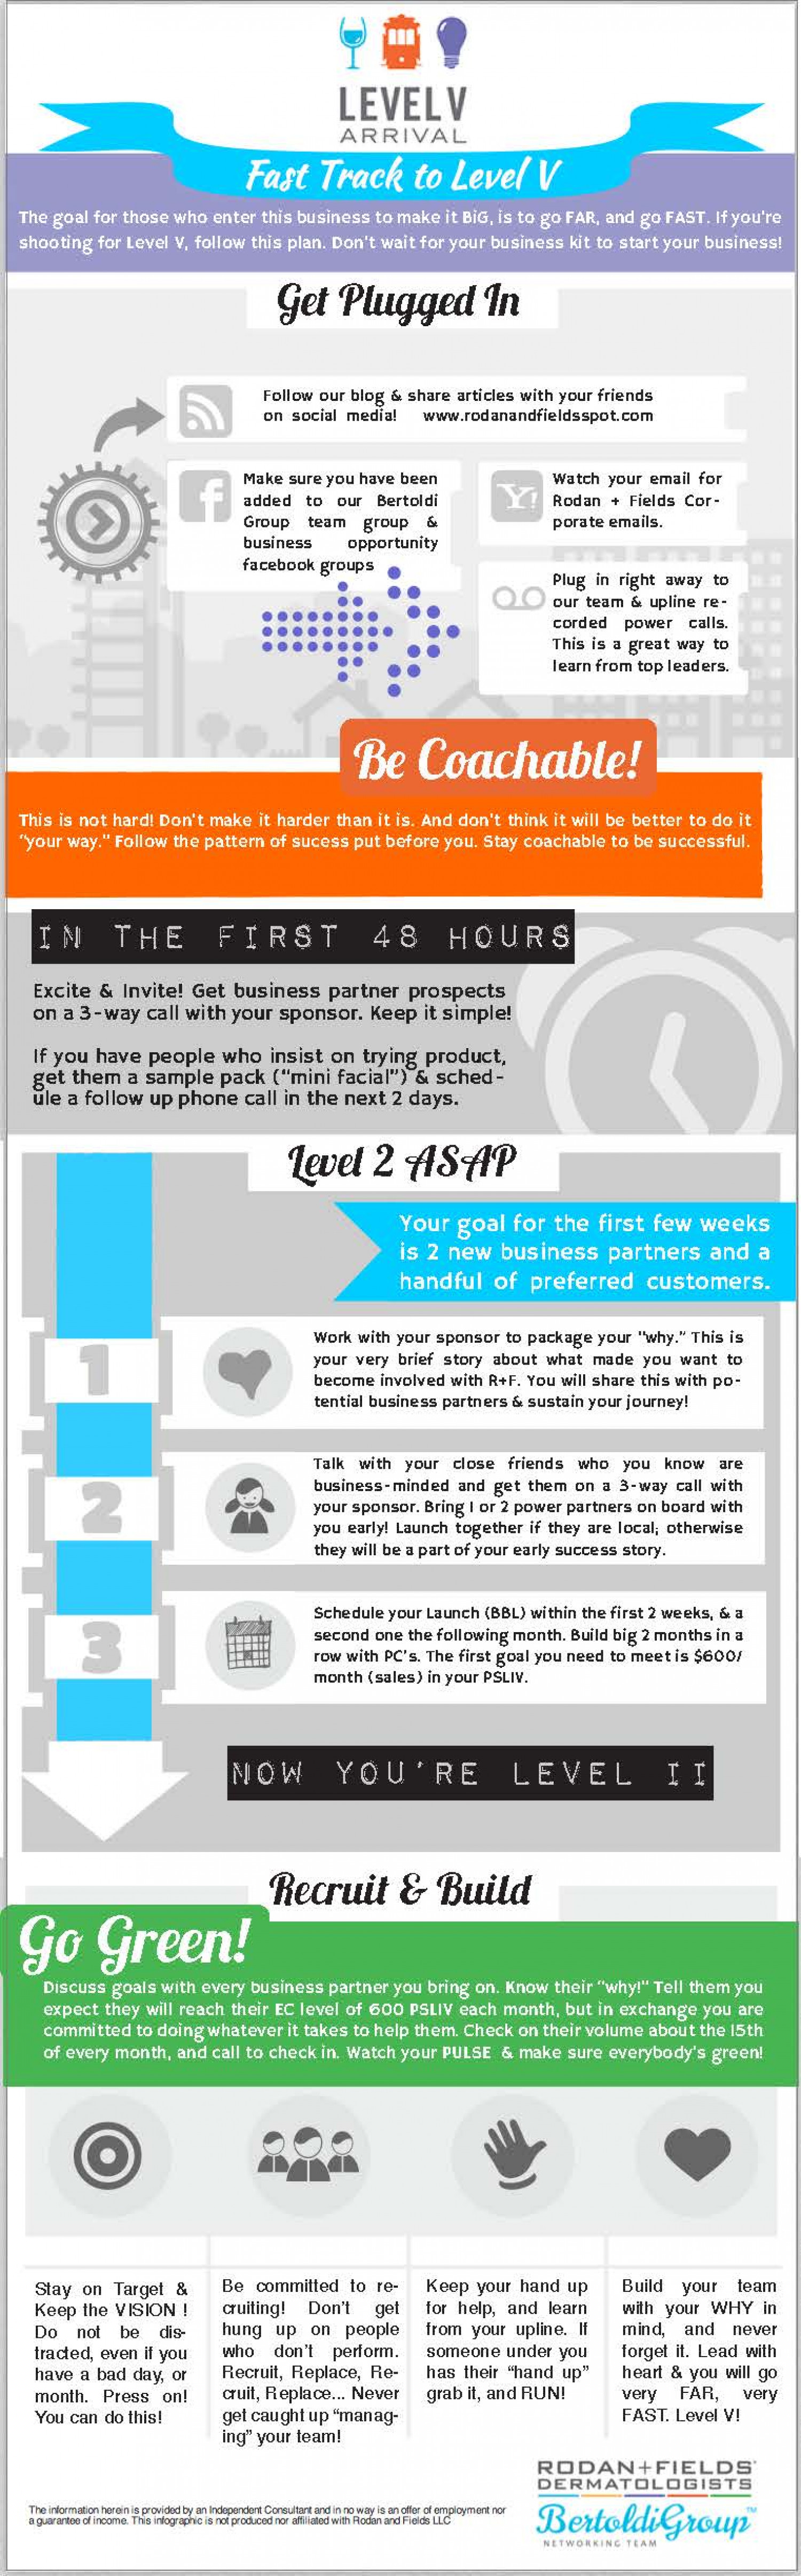 Rodan+Fields® Fast Track To level V Infographic